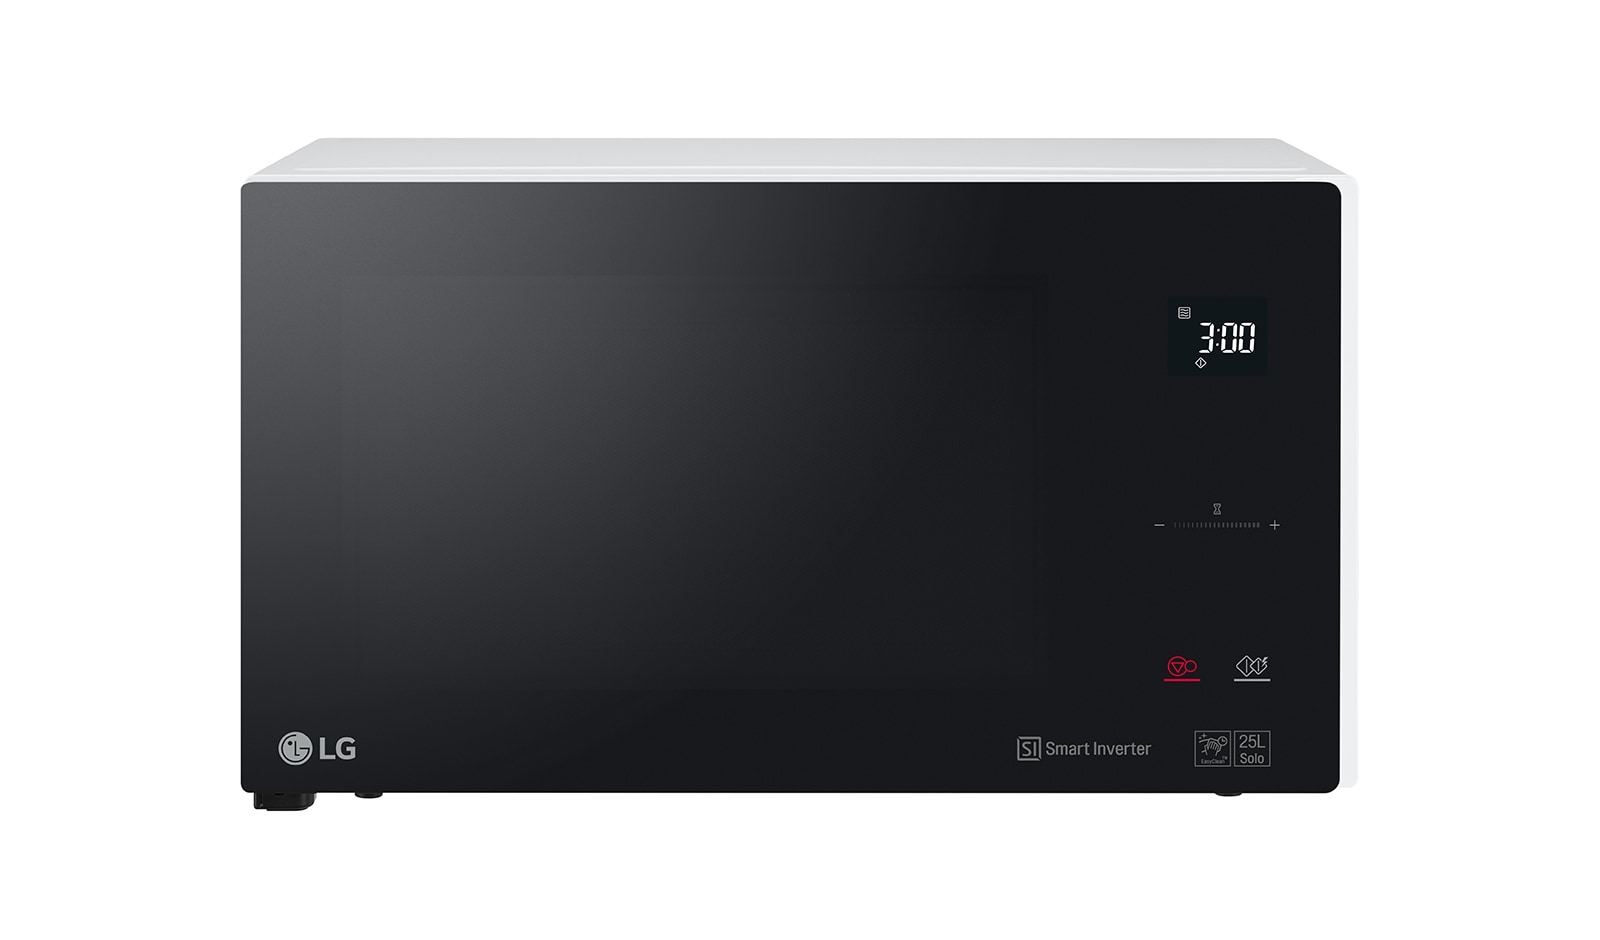 LG Microwave MH6535GISW in Kenya 25L NeoChef Microwave Oven